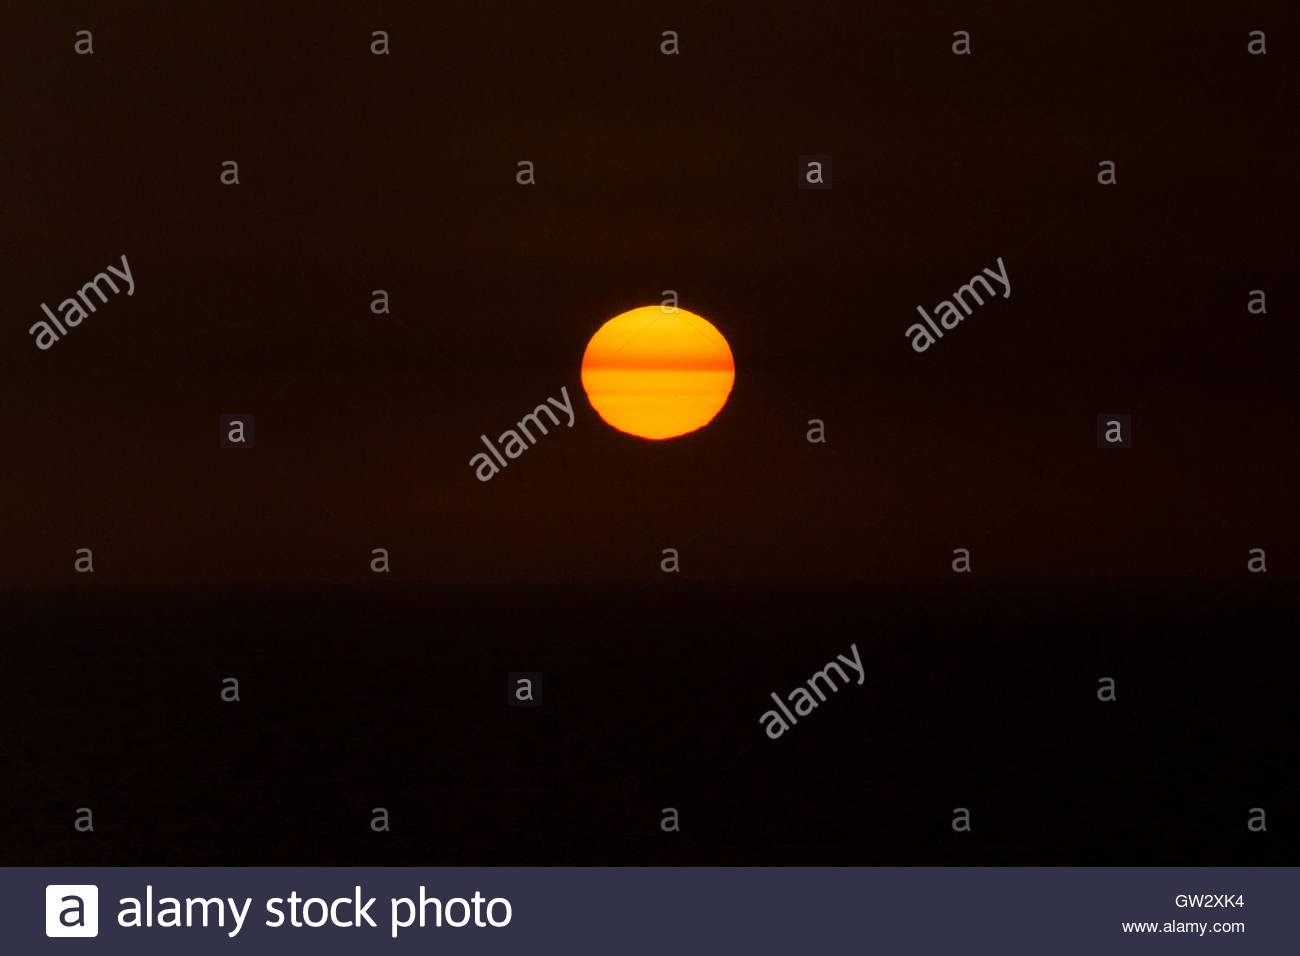 Underexposed sunset, spring in the Southern Hemisphere, Pacific Ocean, Lima, Peru - Stock Image